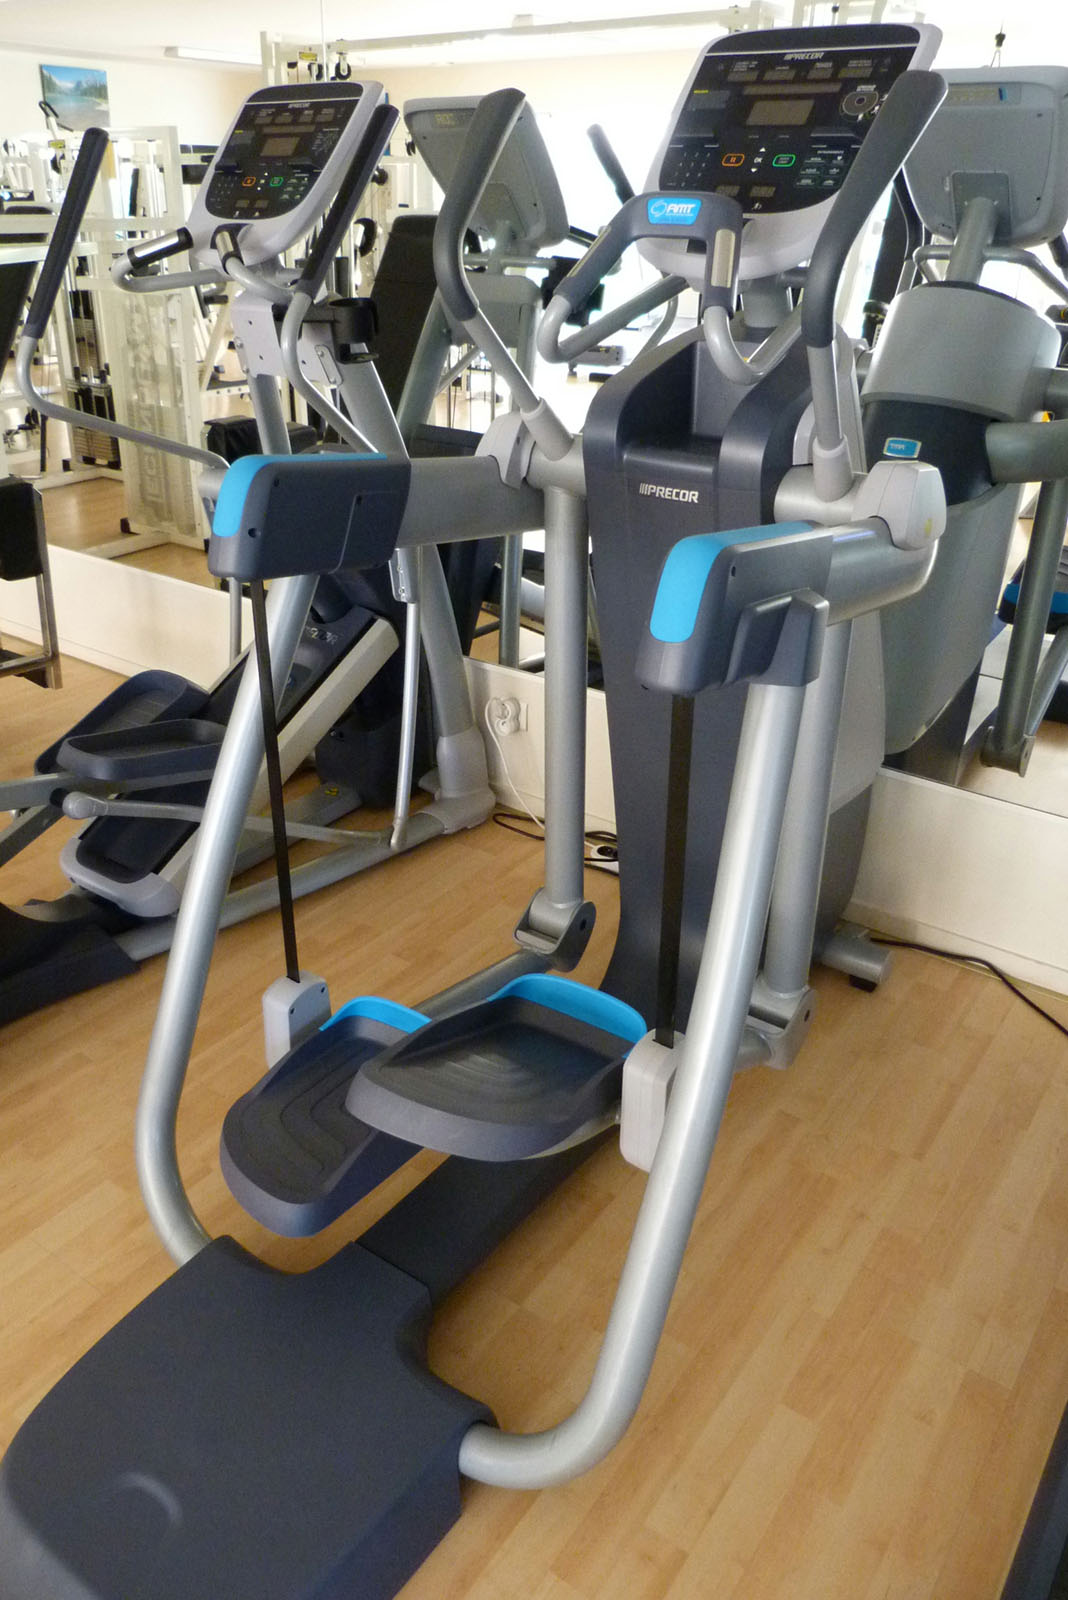 salle de sport bergerac Adaptive Motion Trainer AMT 835 Open Stride Precor 1